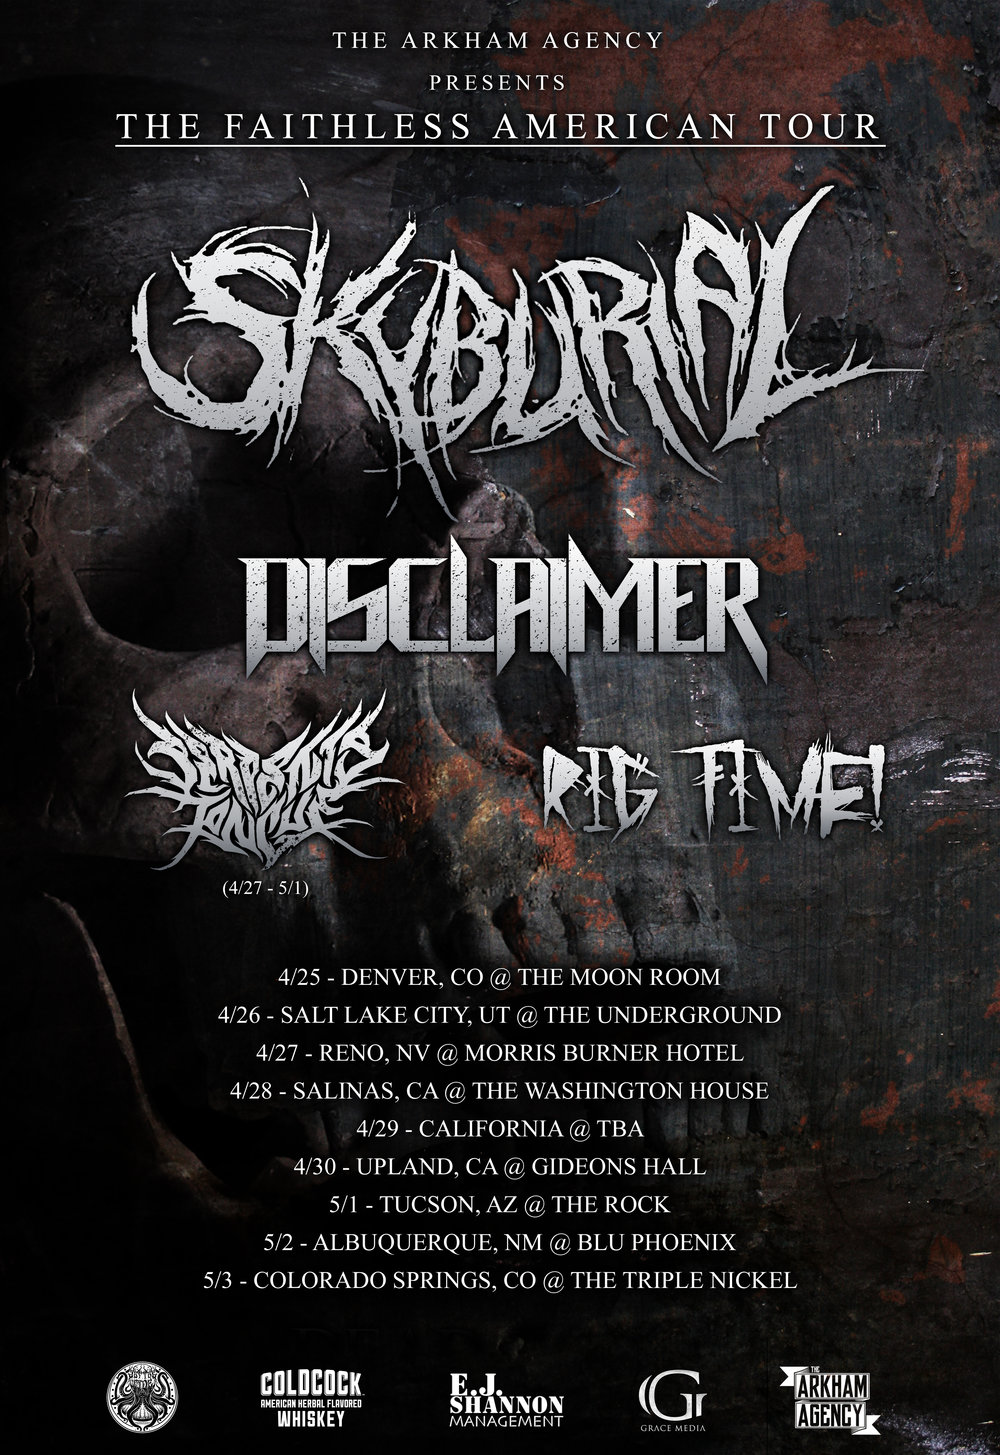 skyburial-tour-2.jpg